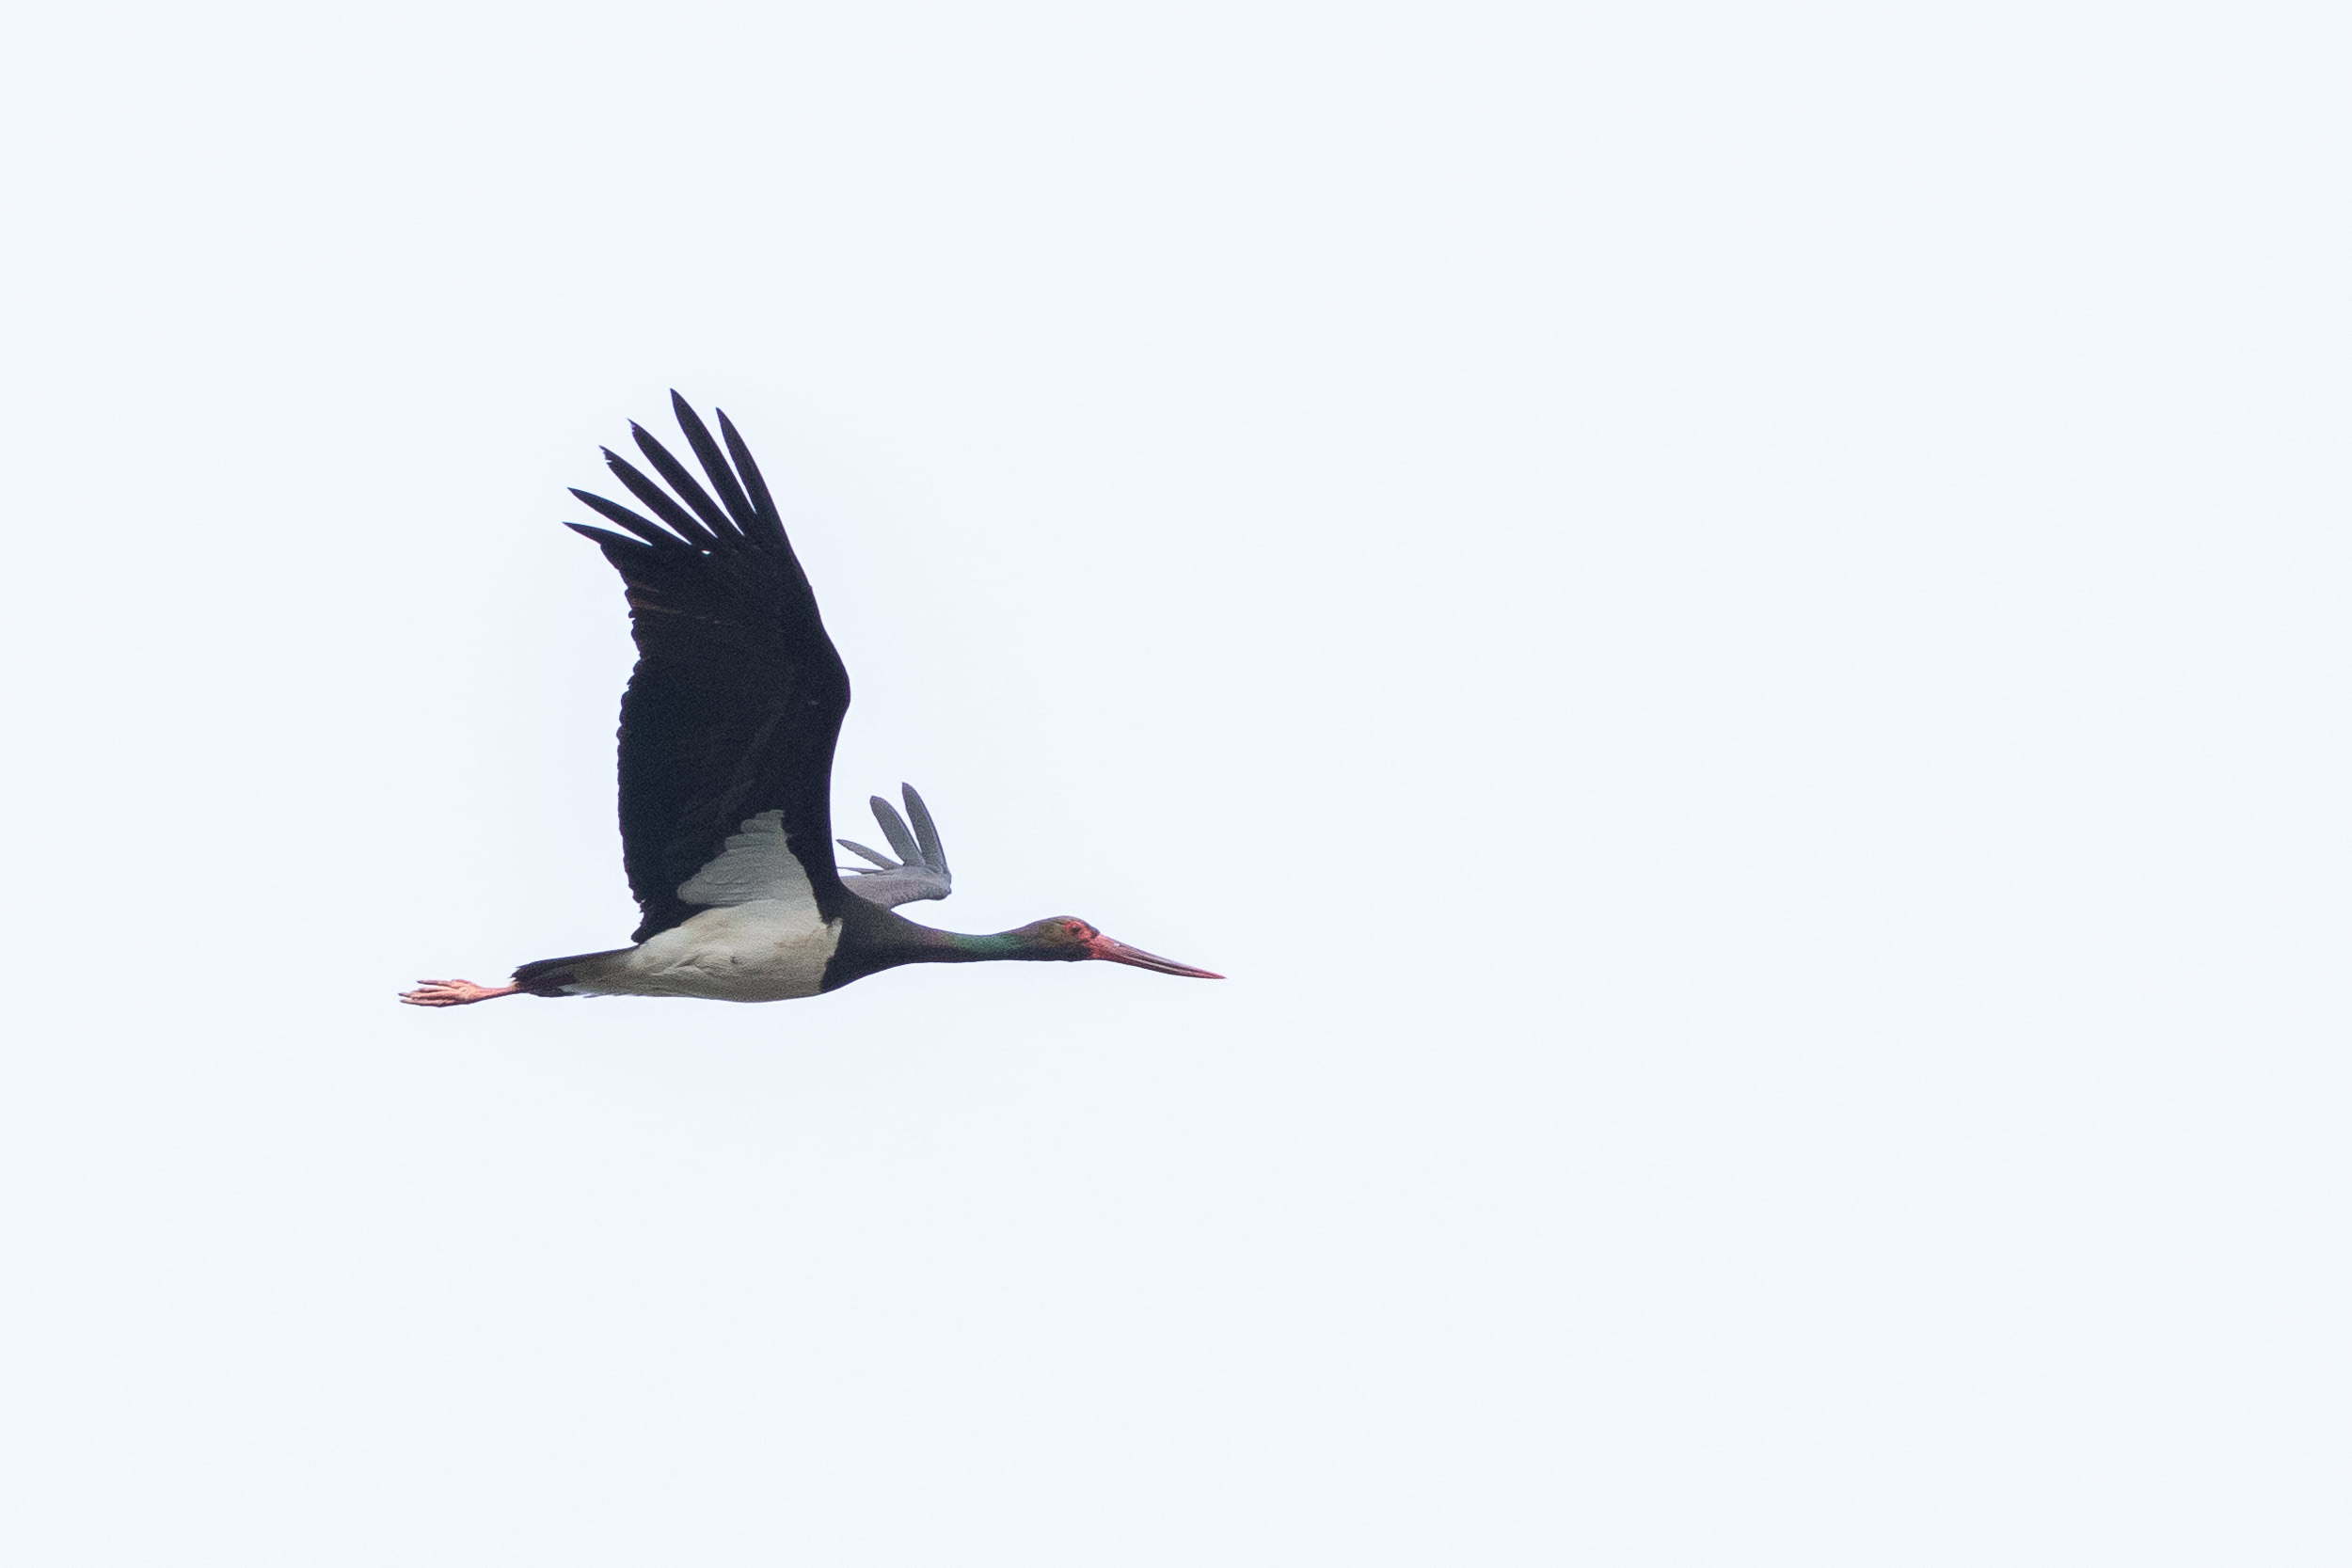 In autumn adult Black Storks don't look this neat anymore. Photo by Diego Jansen.